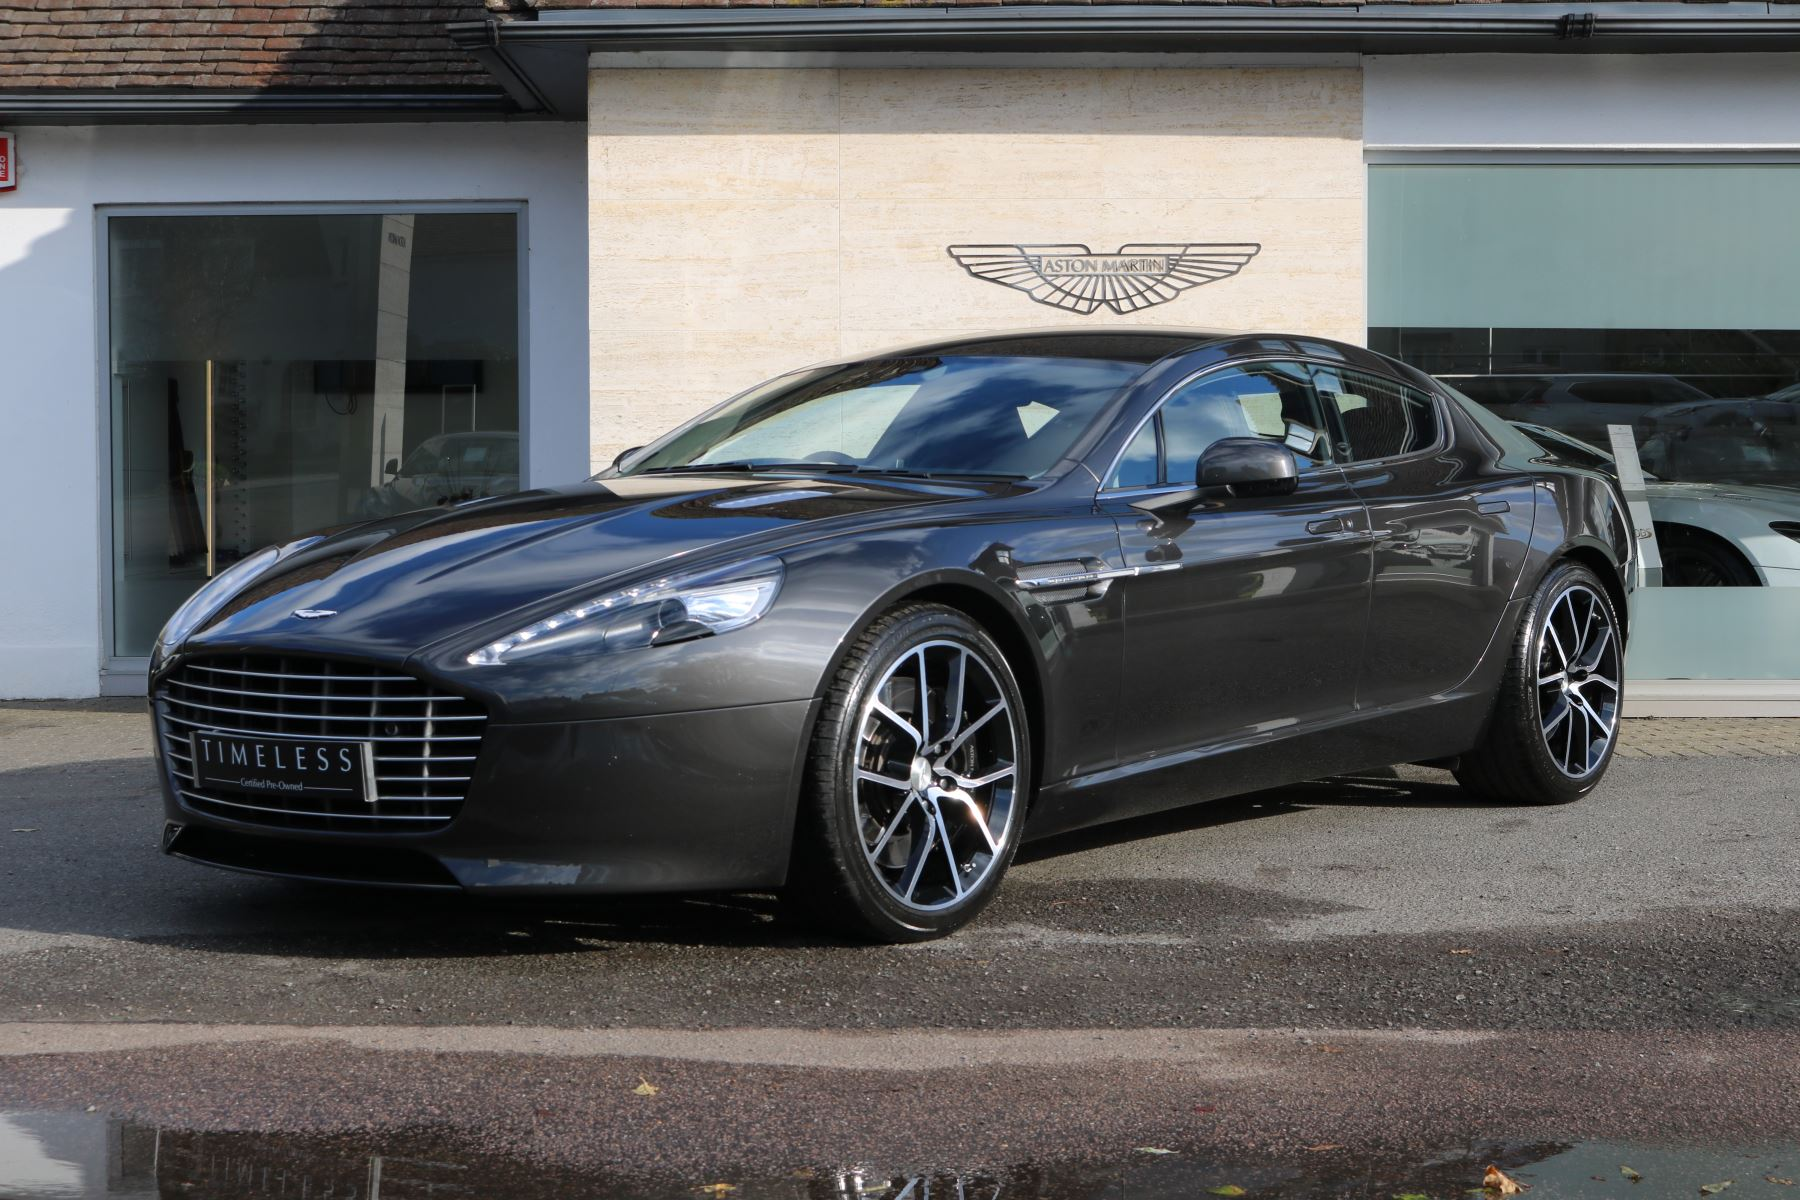 Aston Martin Rapide V12 4dr Touchtronic Auto 5.9 Automatic 5 door Saloon (2014) image